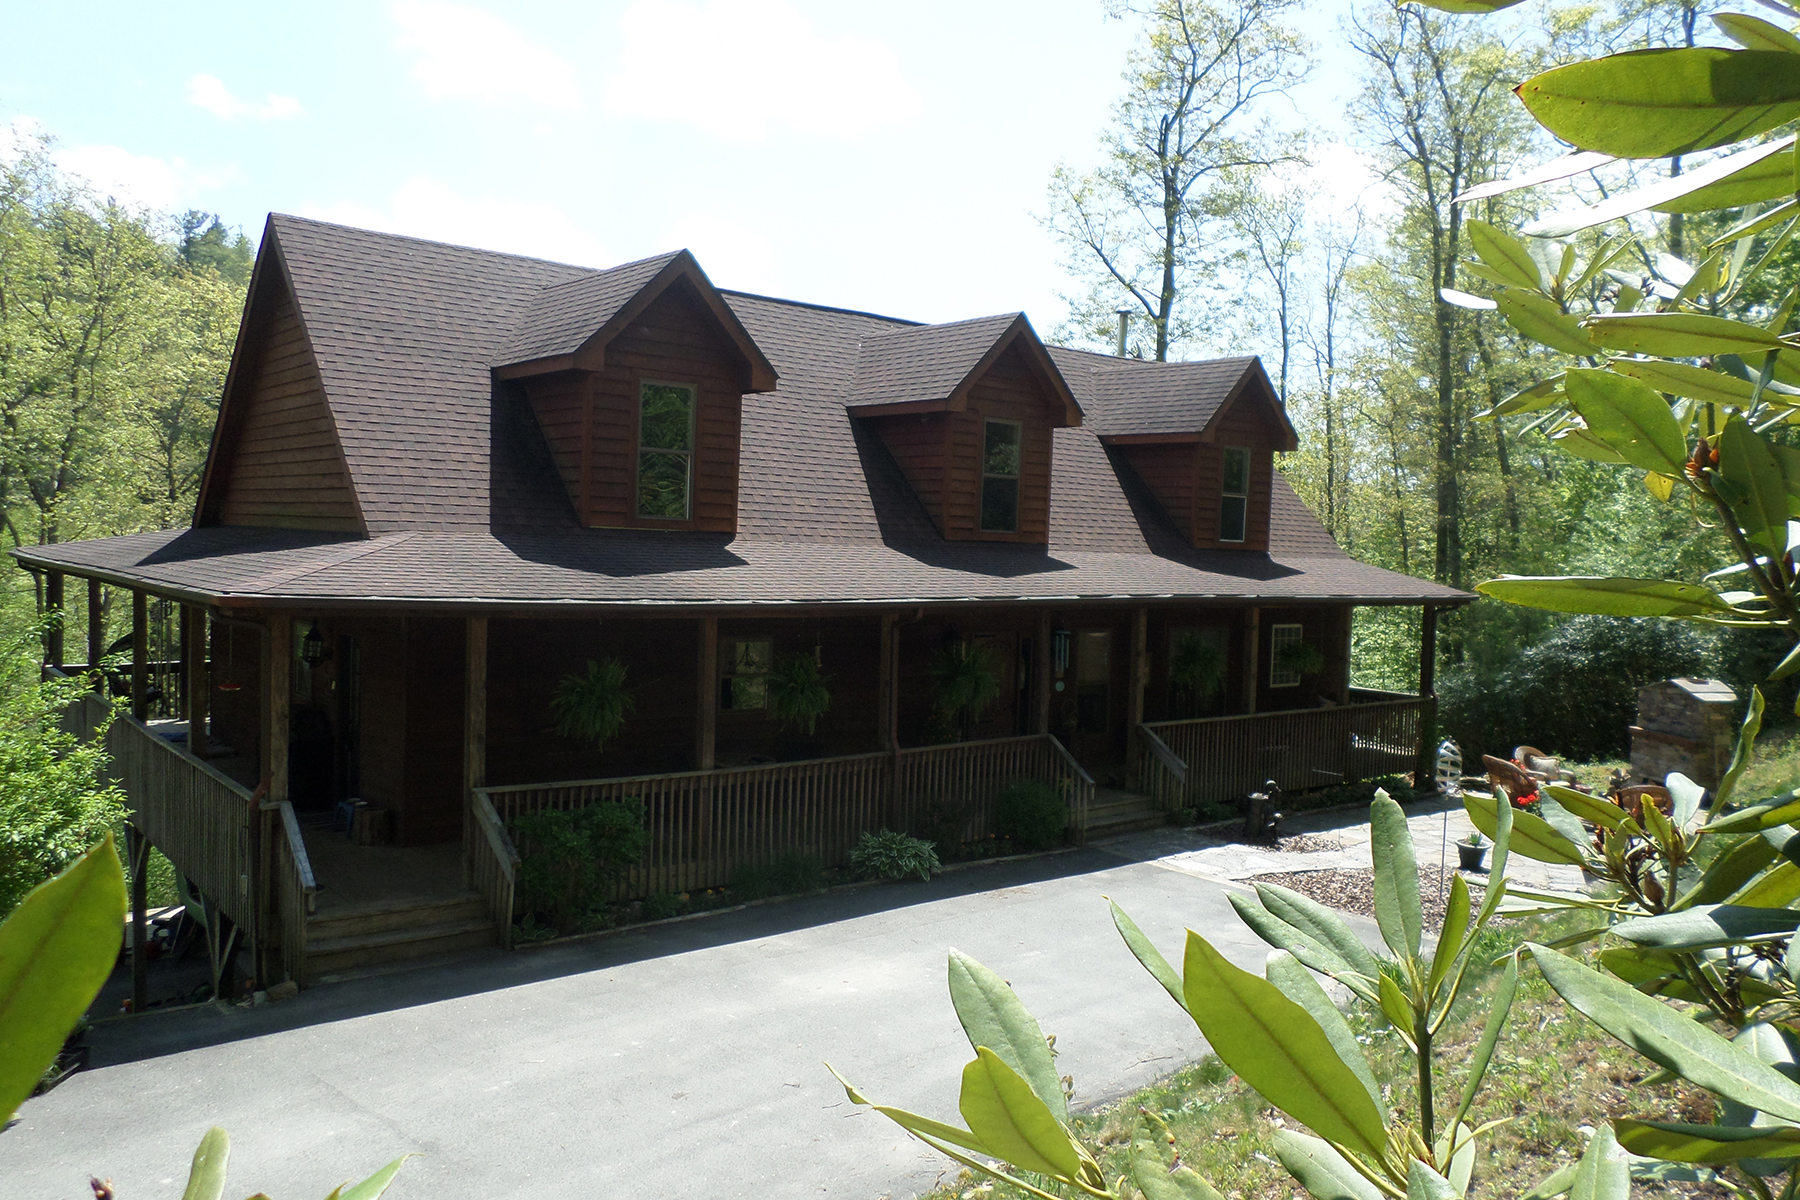 Single Family Home for Sale at Newland 670 Linville River Farm Lane Newland, North Carolina, 28657 United States